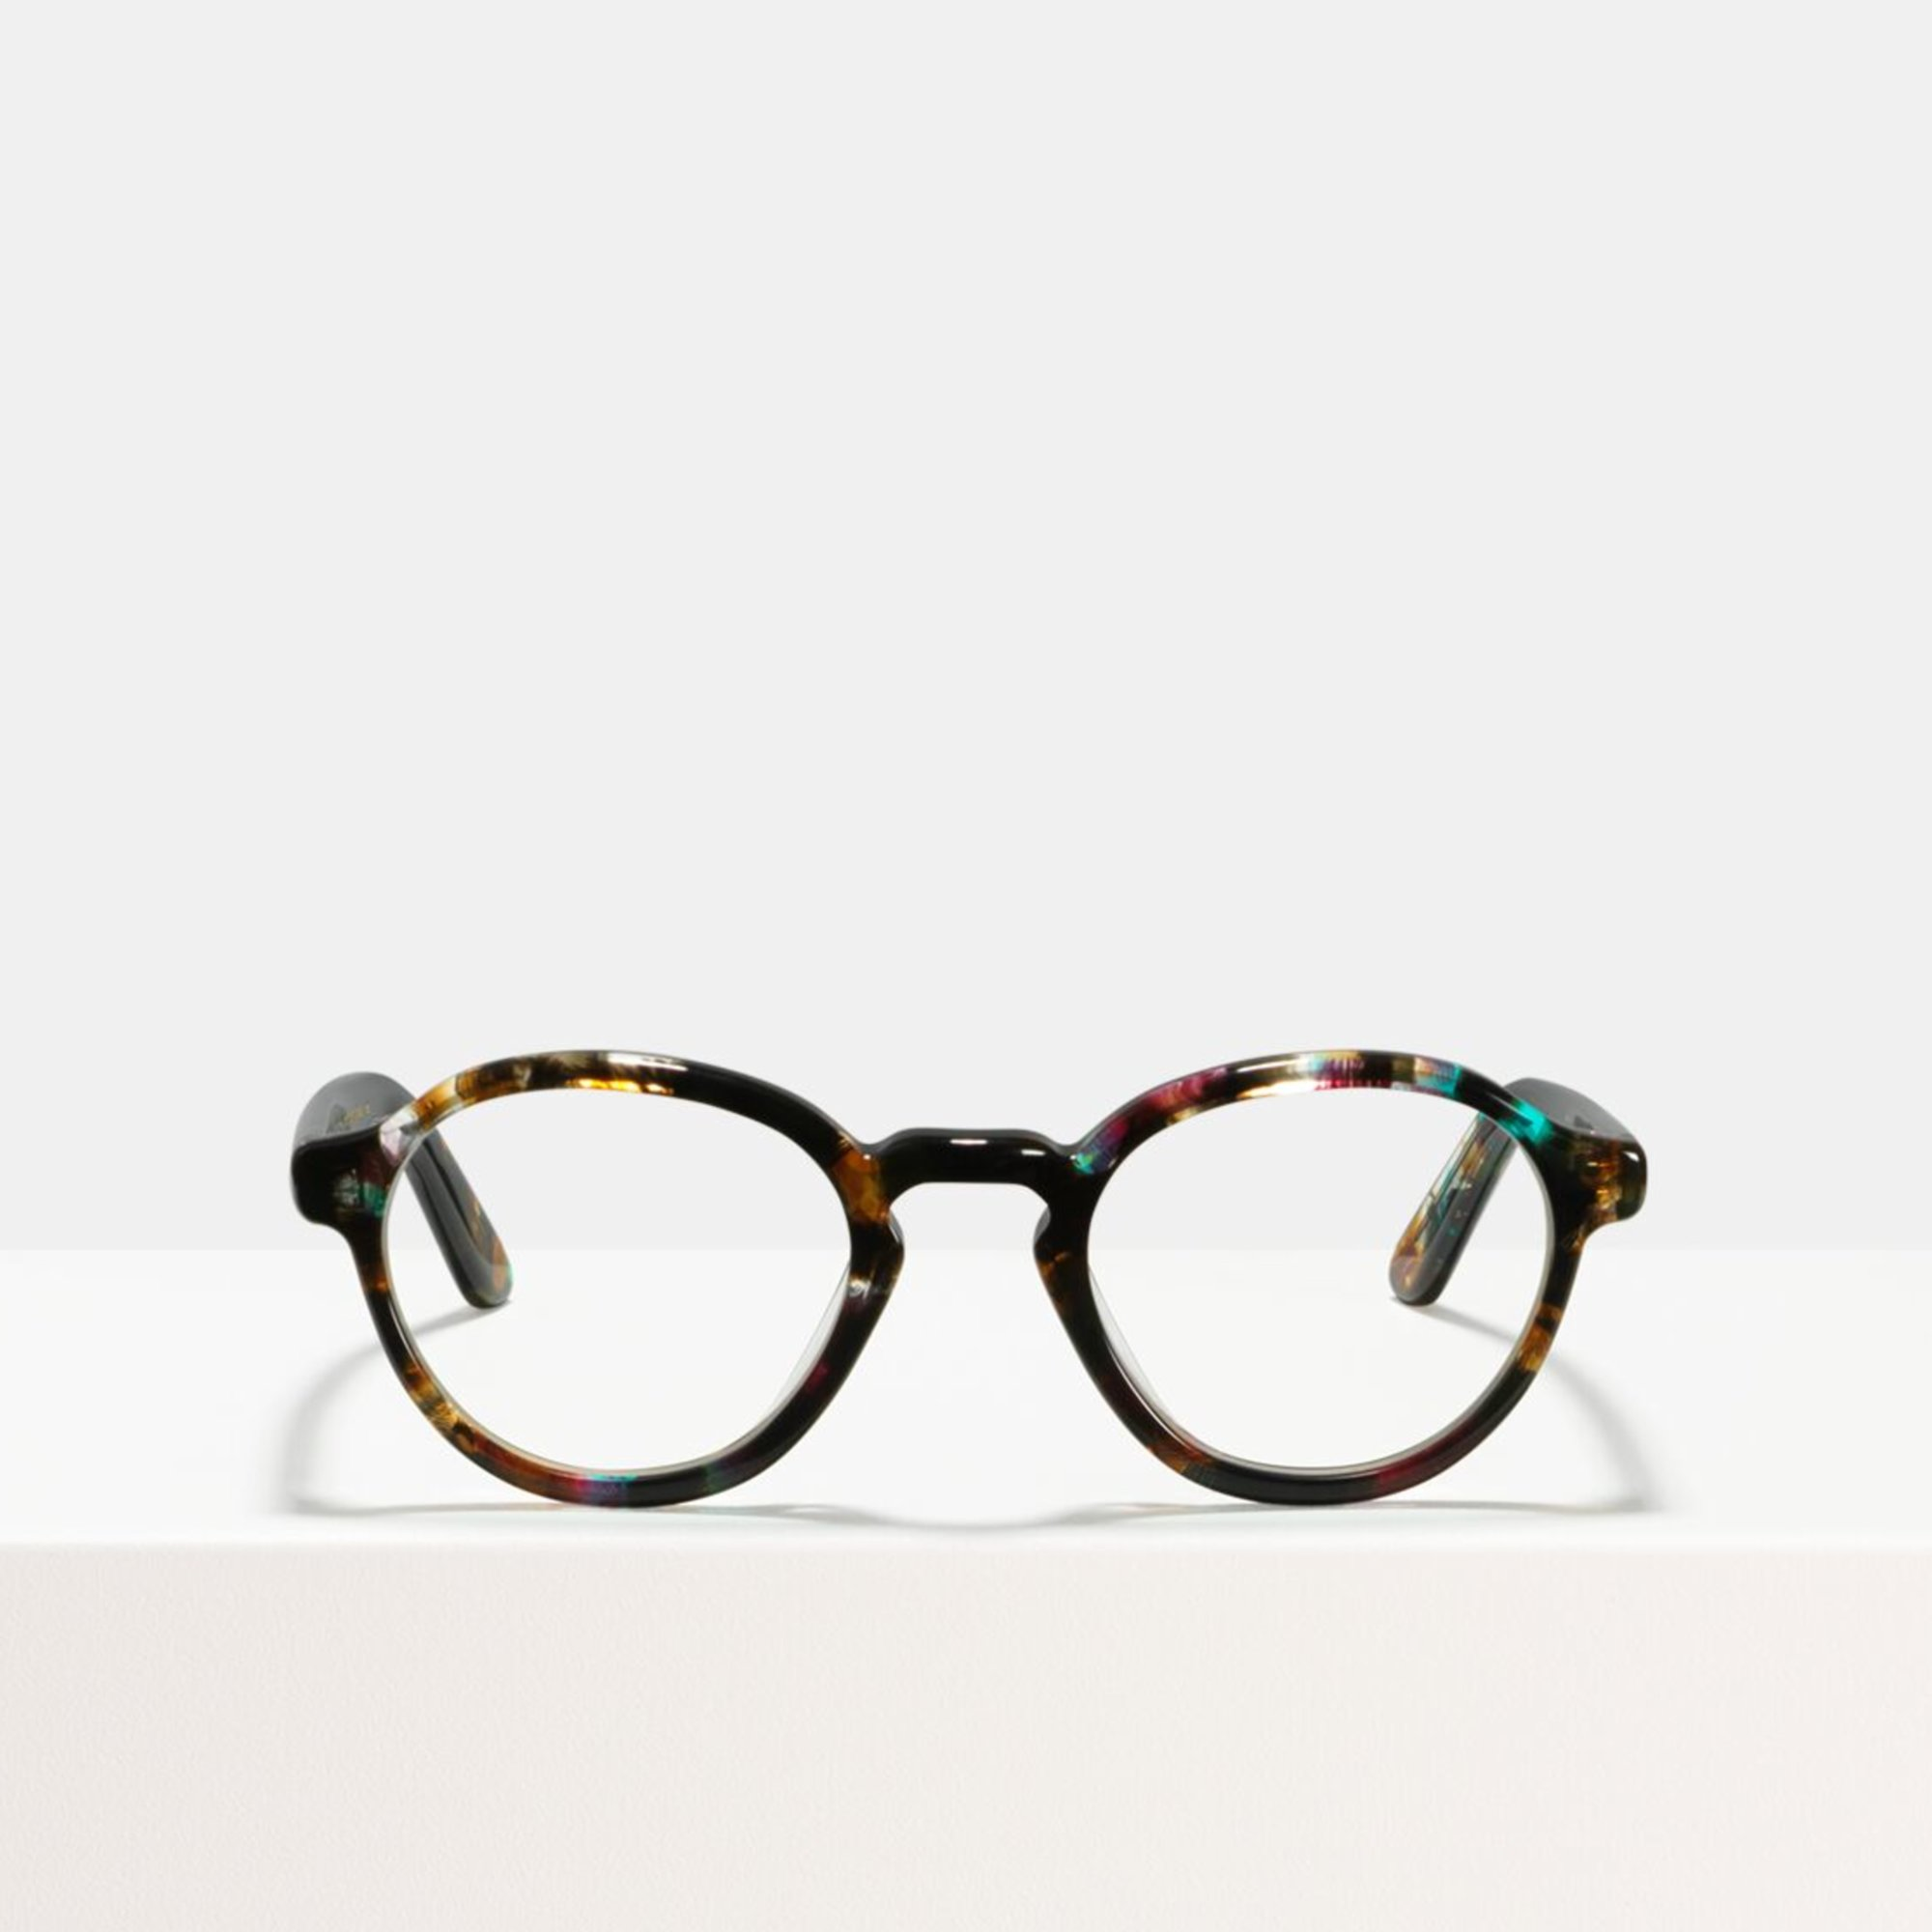 Ace & Tate Glasses | round acetate in Brown, Black, Blue, Pink